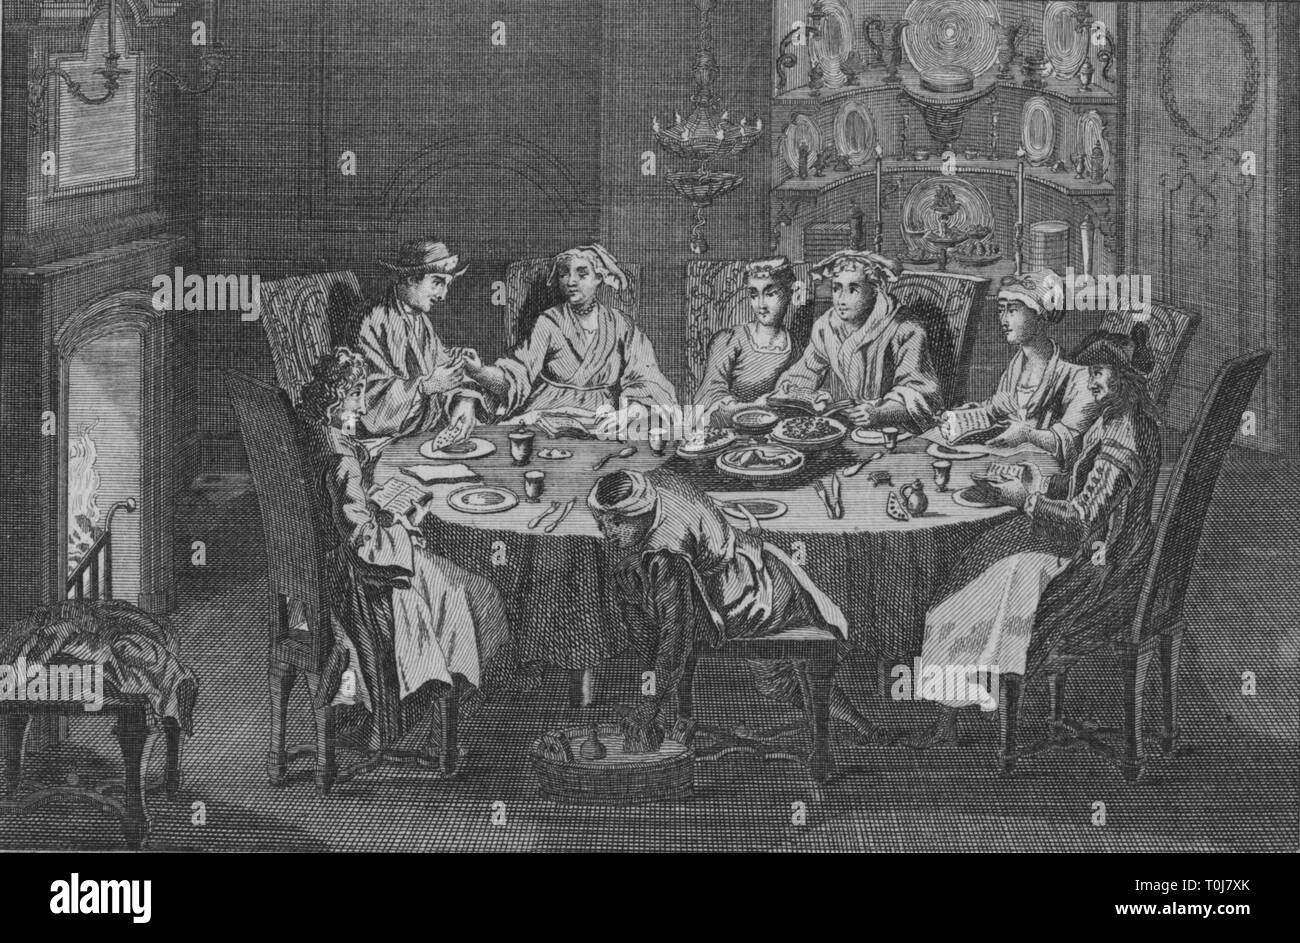 'The Passover of the Portuguese Jews', c1730s. Creator: Unknown. - Stock Image